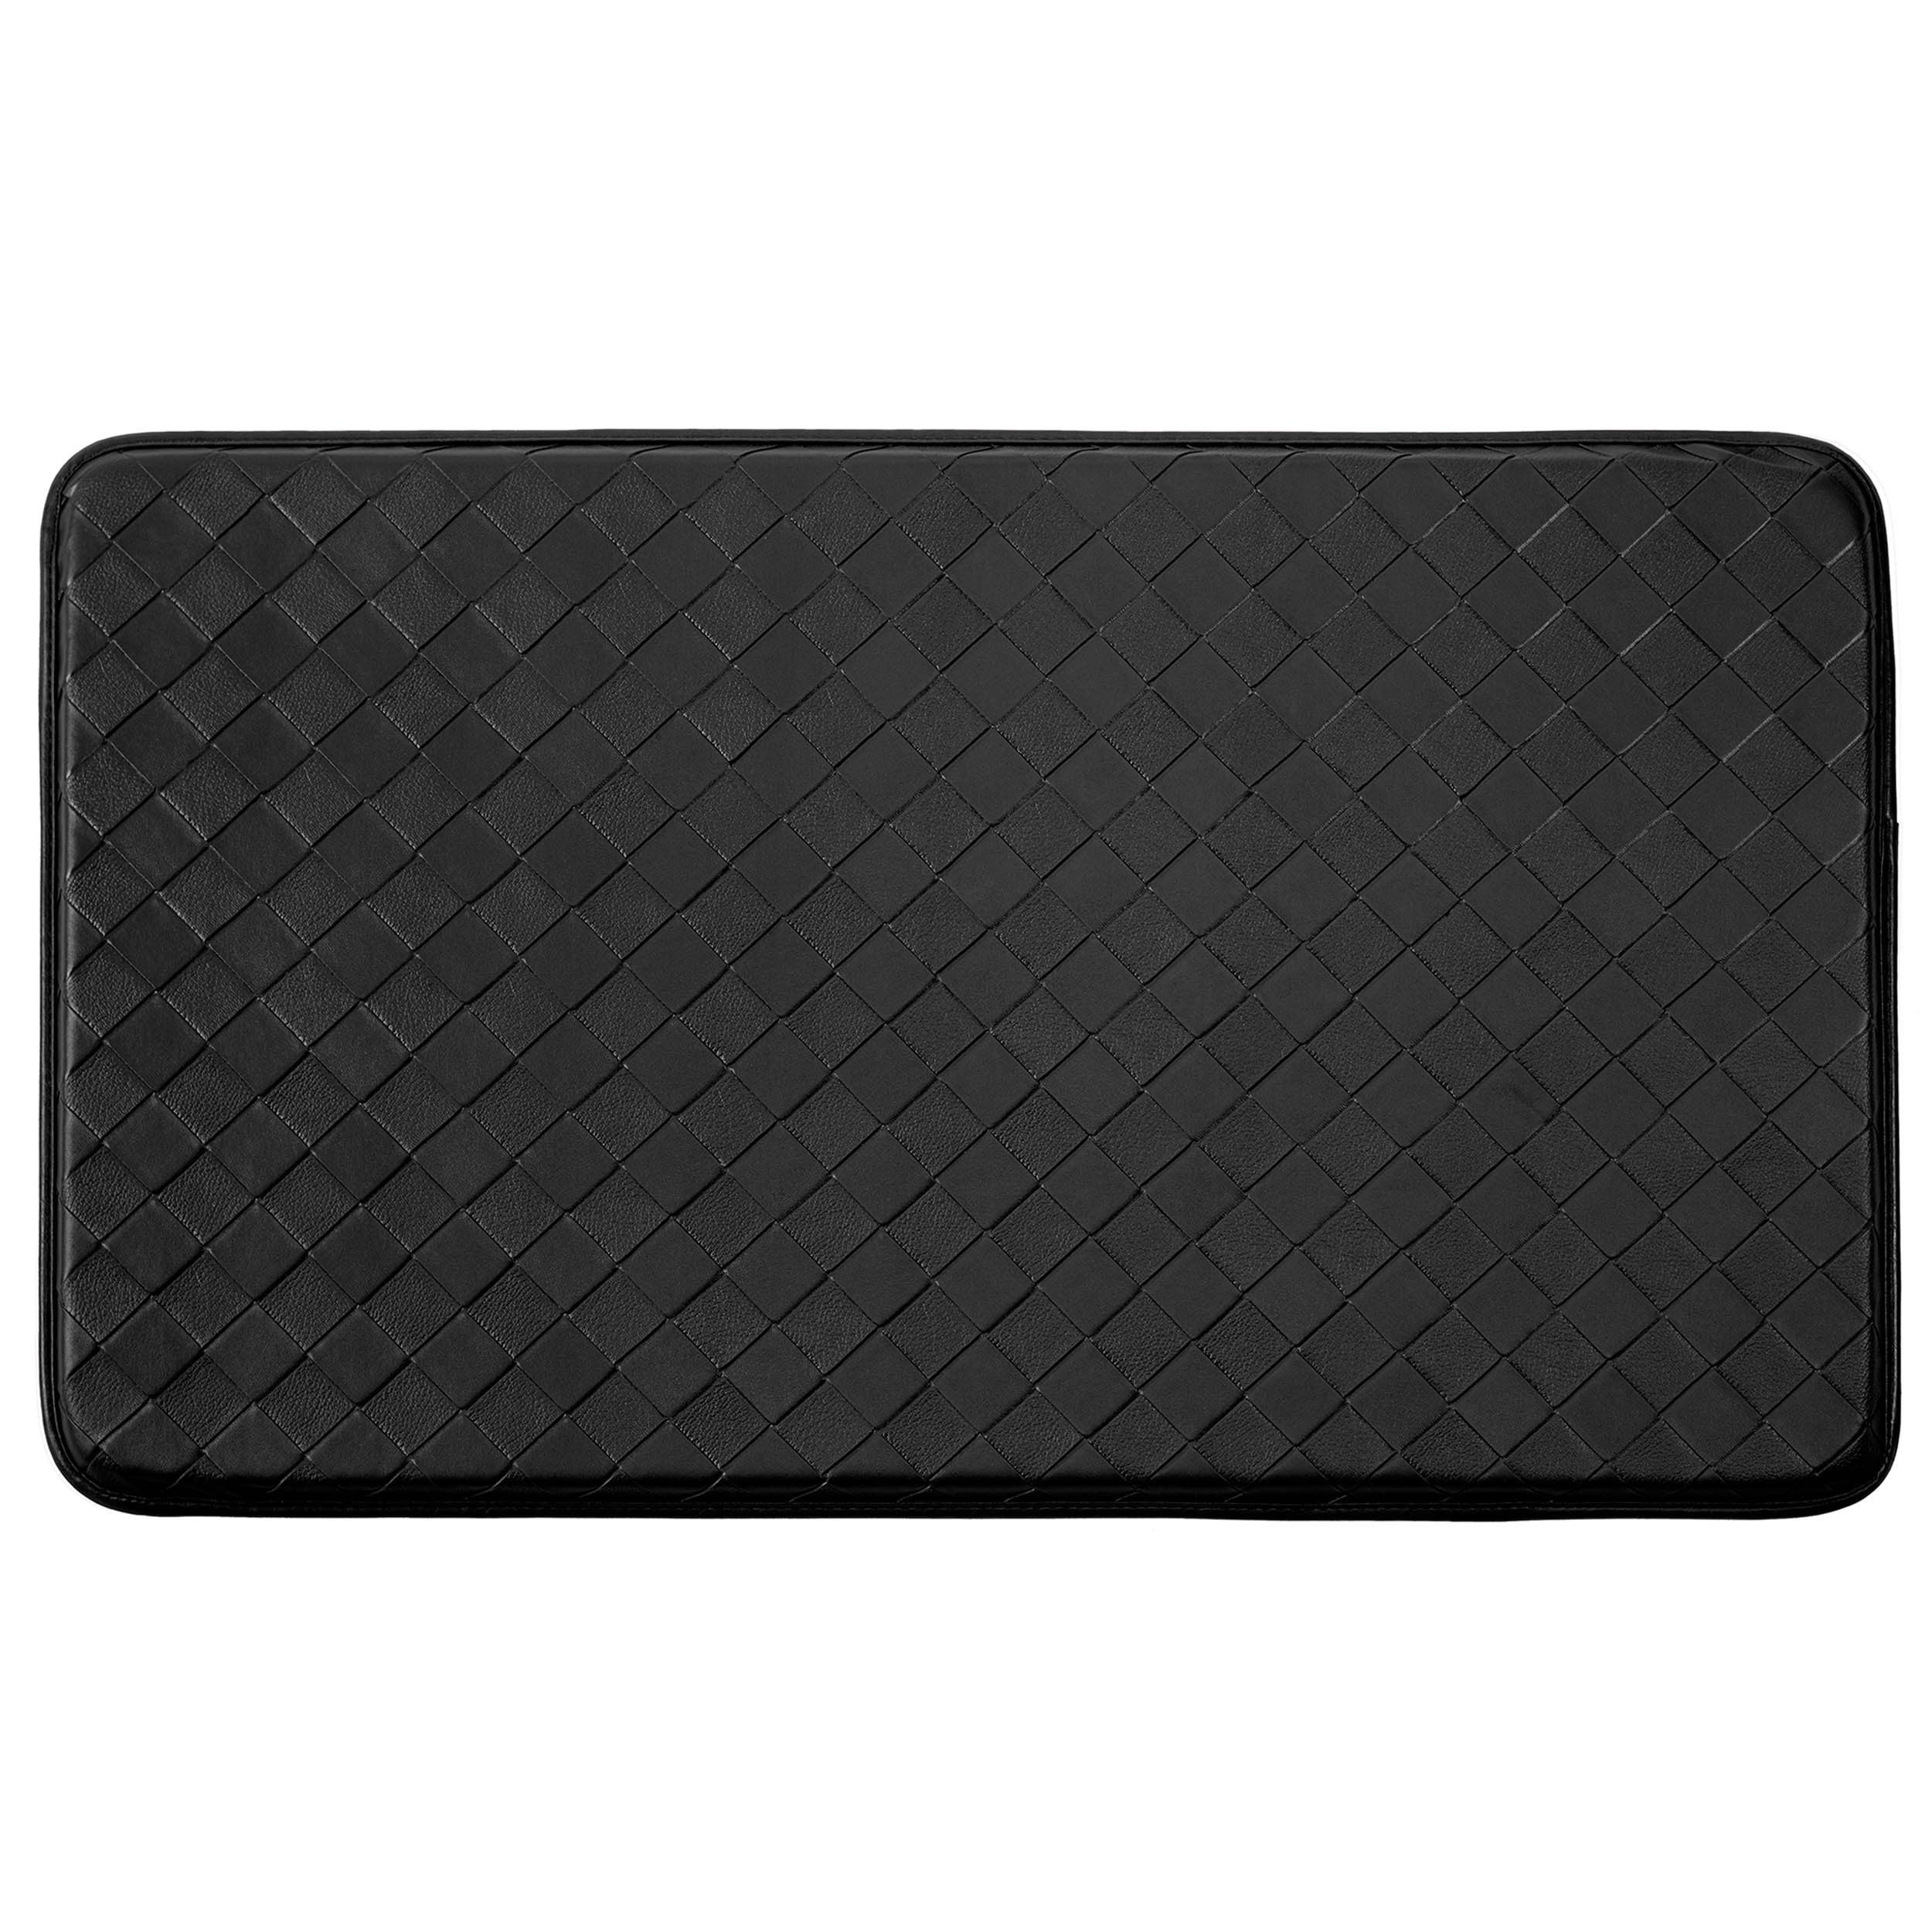 Chef Gear Faux Leather Black Diamond Weave Comfort Kitchen Mat 20 In X 32 In